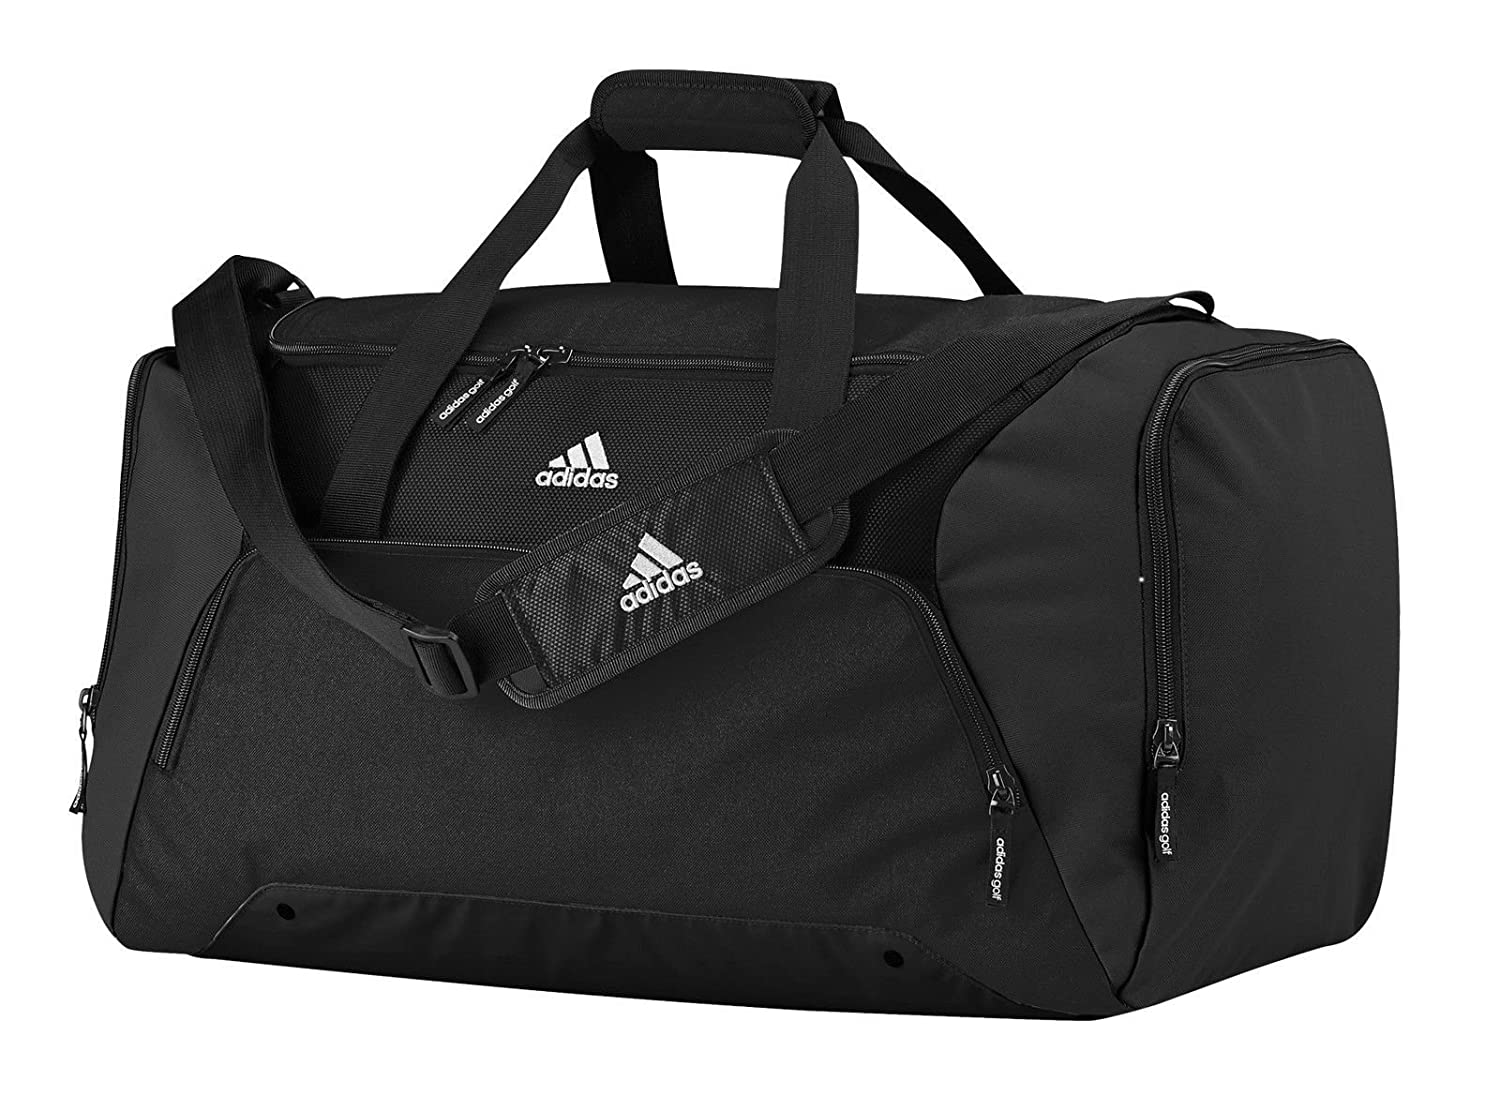 2763e5bc73 adidas AD180BLAC 2015 Duffel Gym Bag Travel Holdall